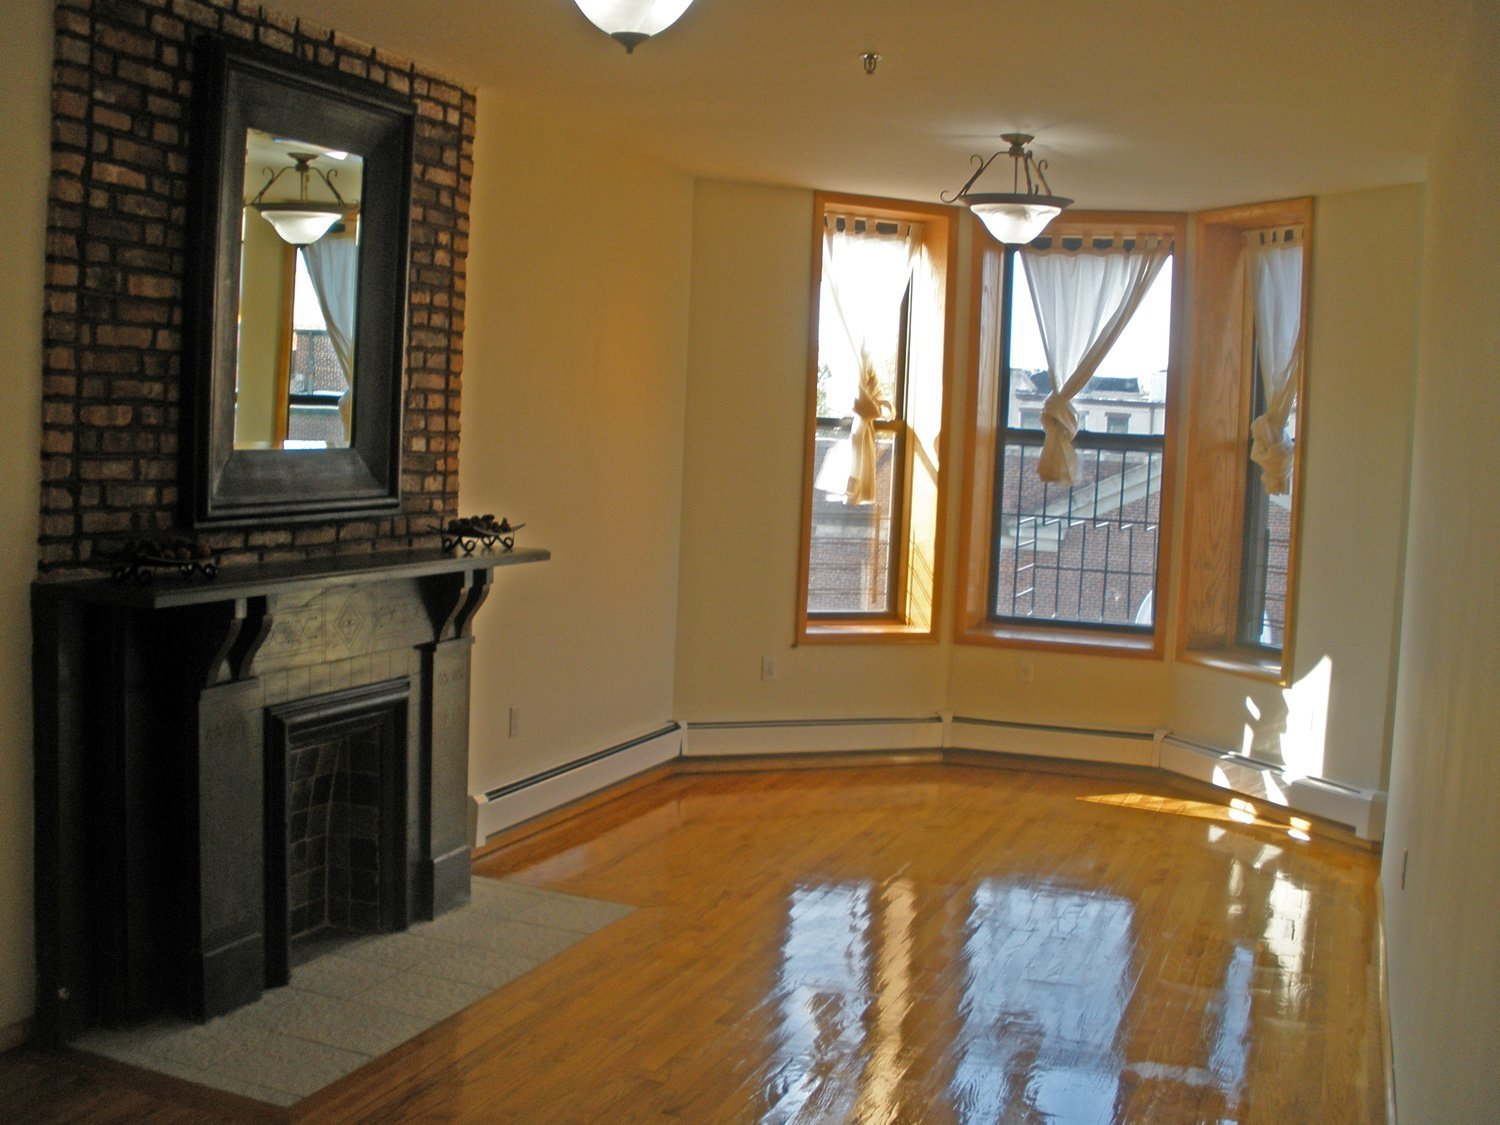 Best Bed Stuy 1 Bedroom Apartment For Rent Brooklyn Crg3118 With Pictures